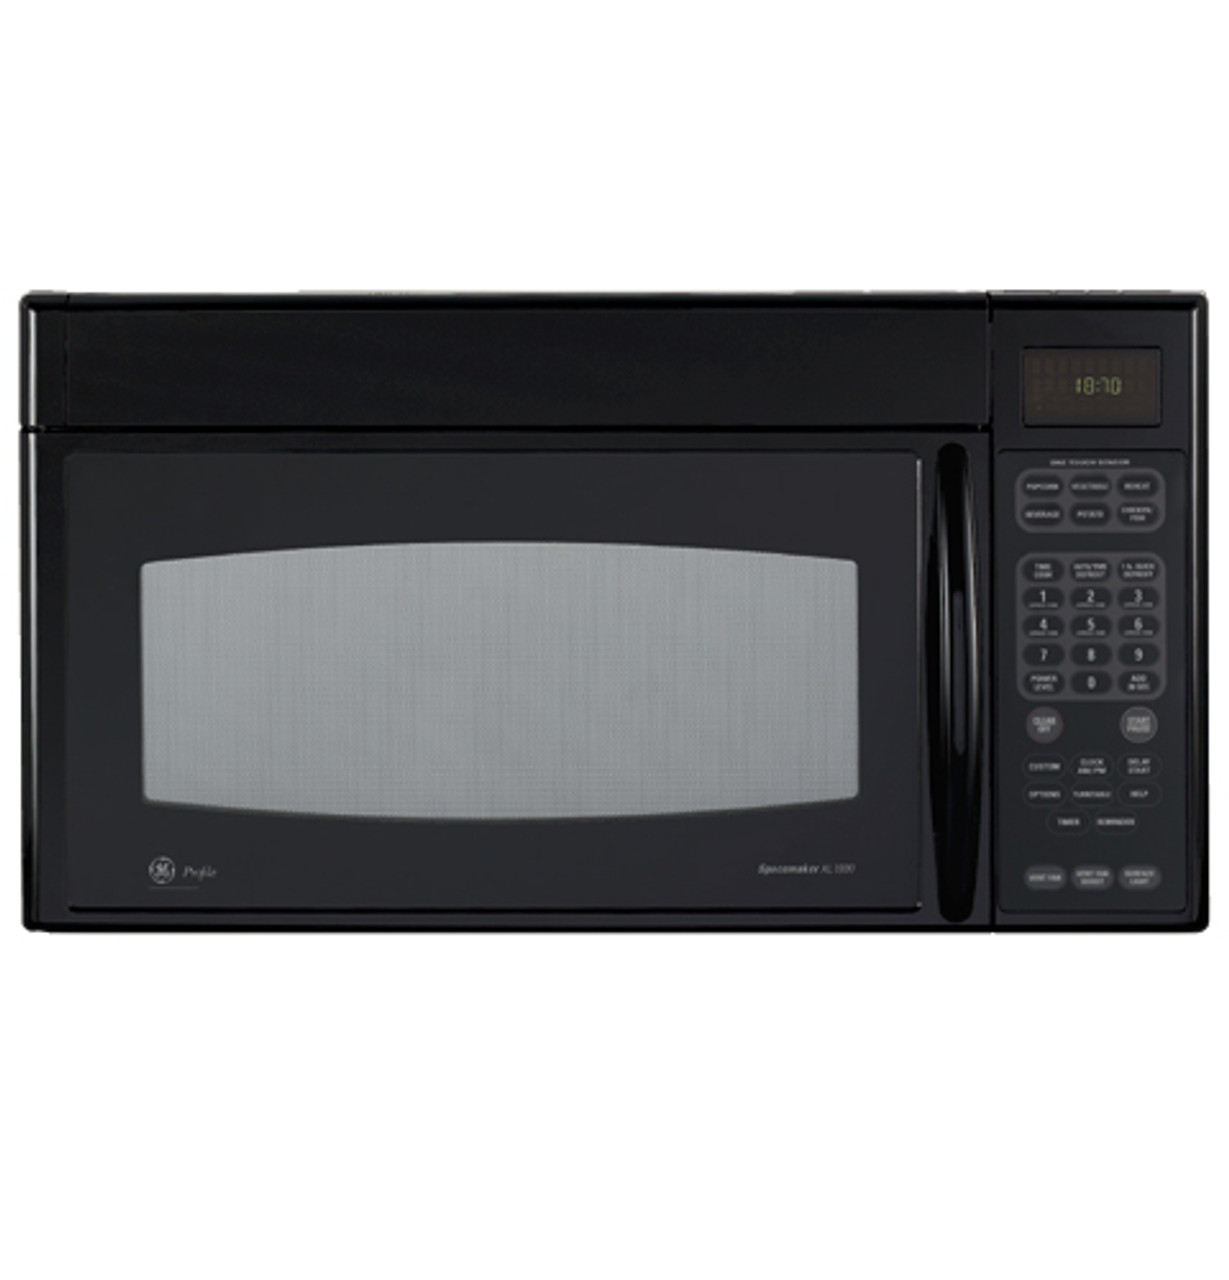 ge profile spacemaker xl1800 microwave oven jvm1870bf